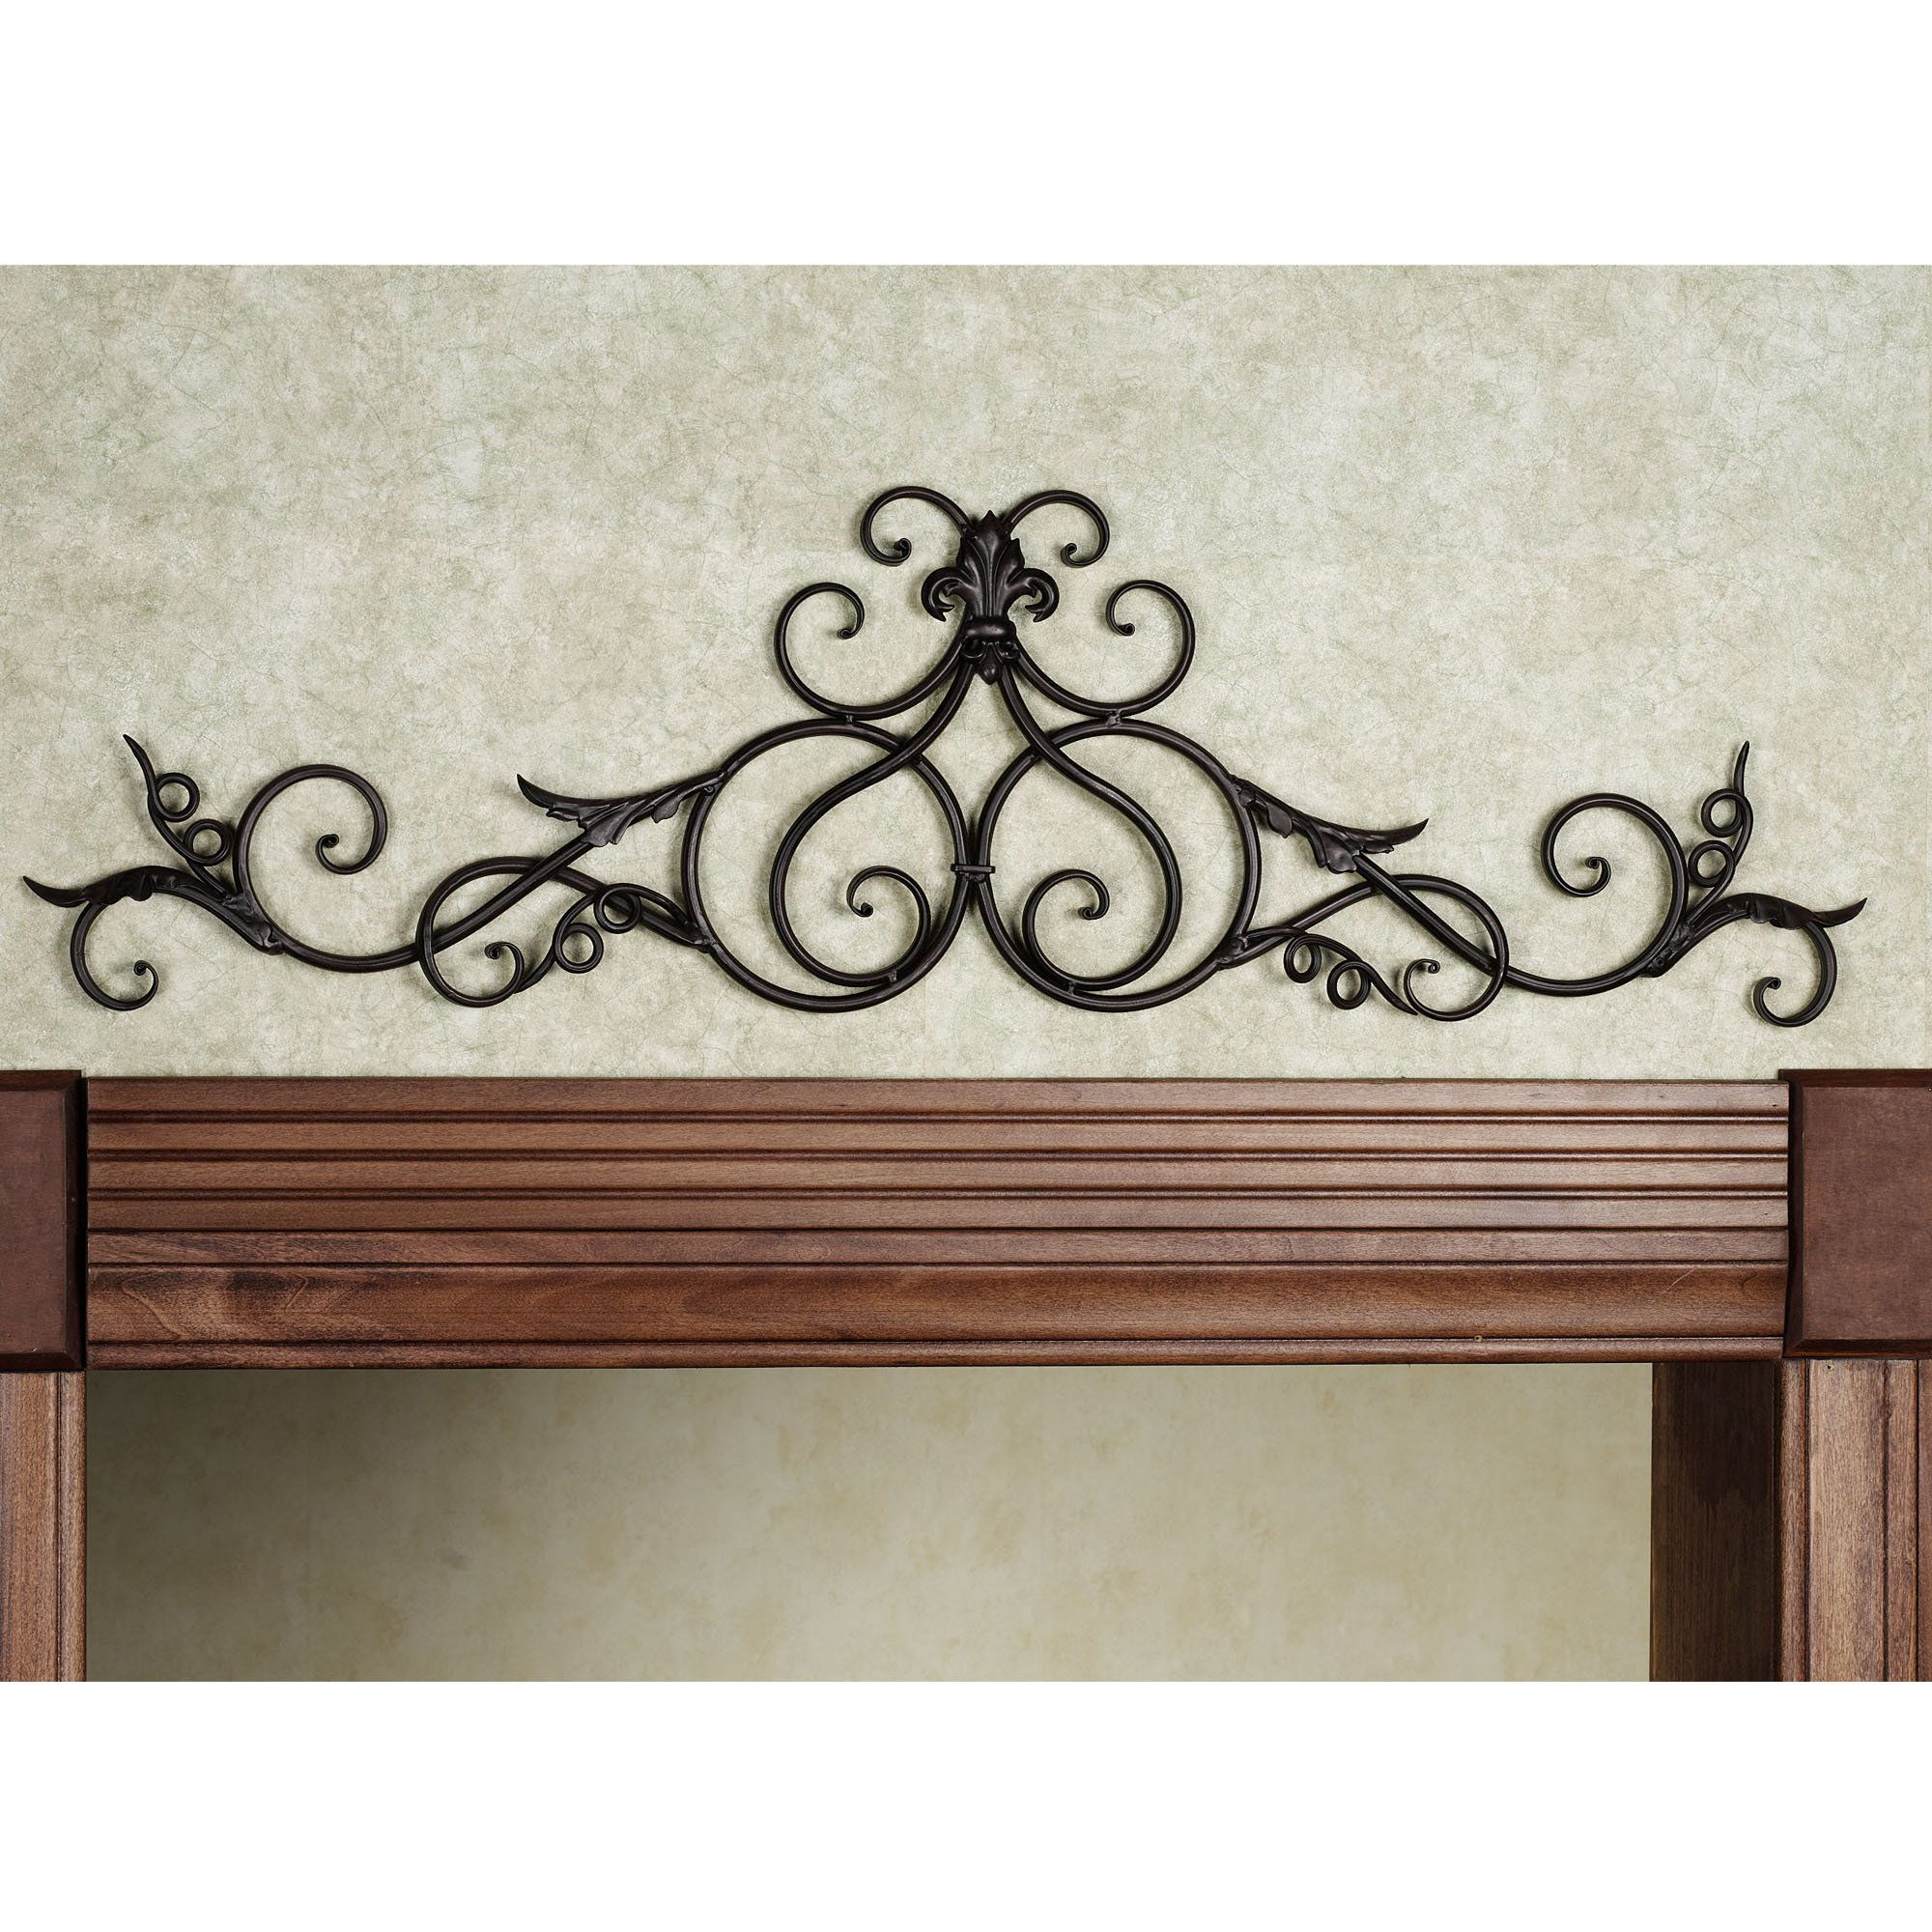 Iron Scroll Wall Decor In 2020 With Images Wrought Iron Wall